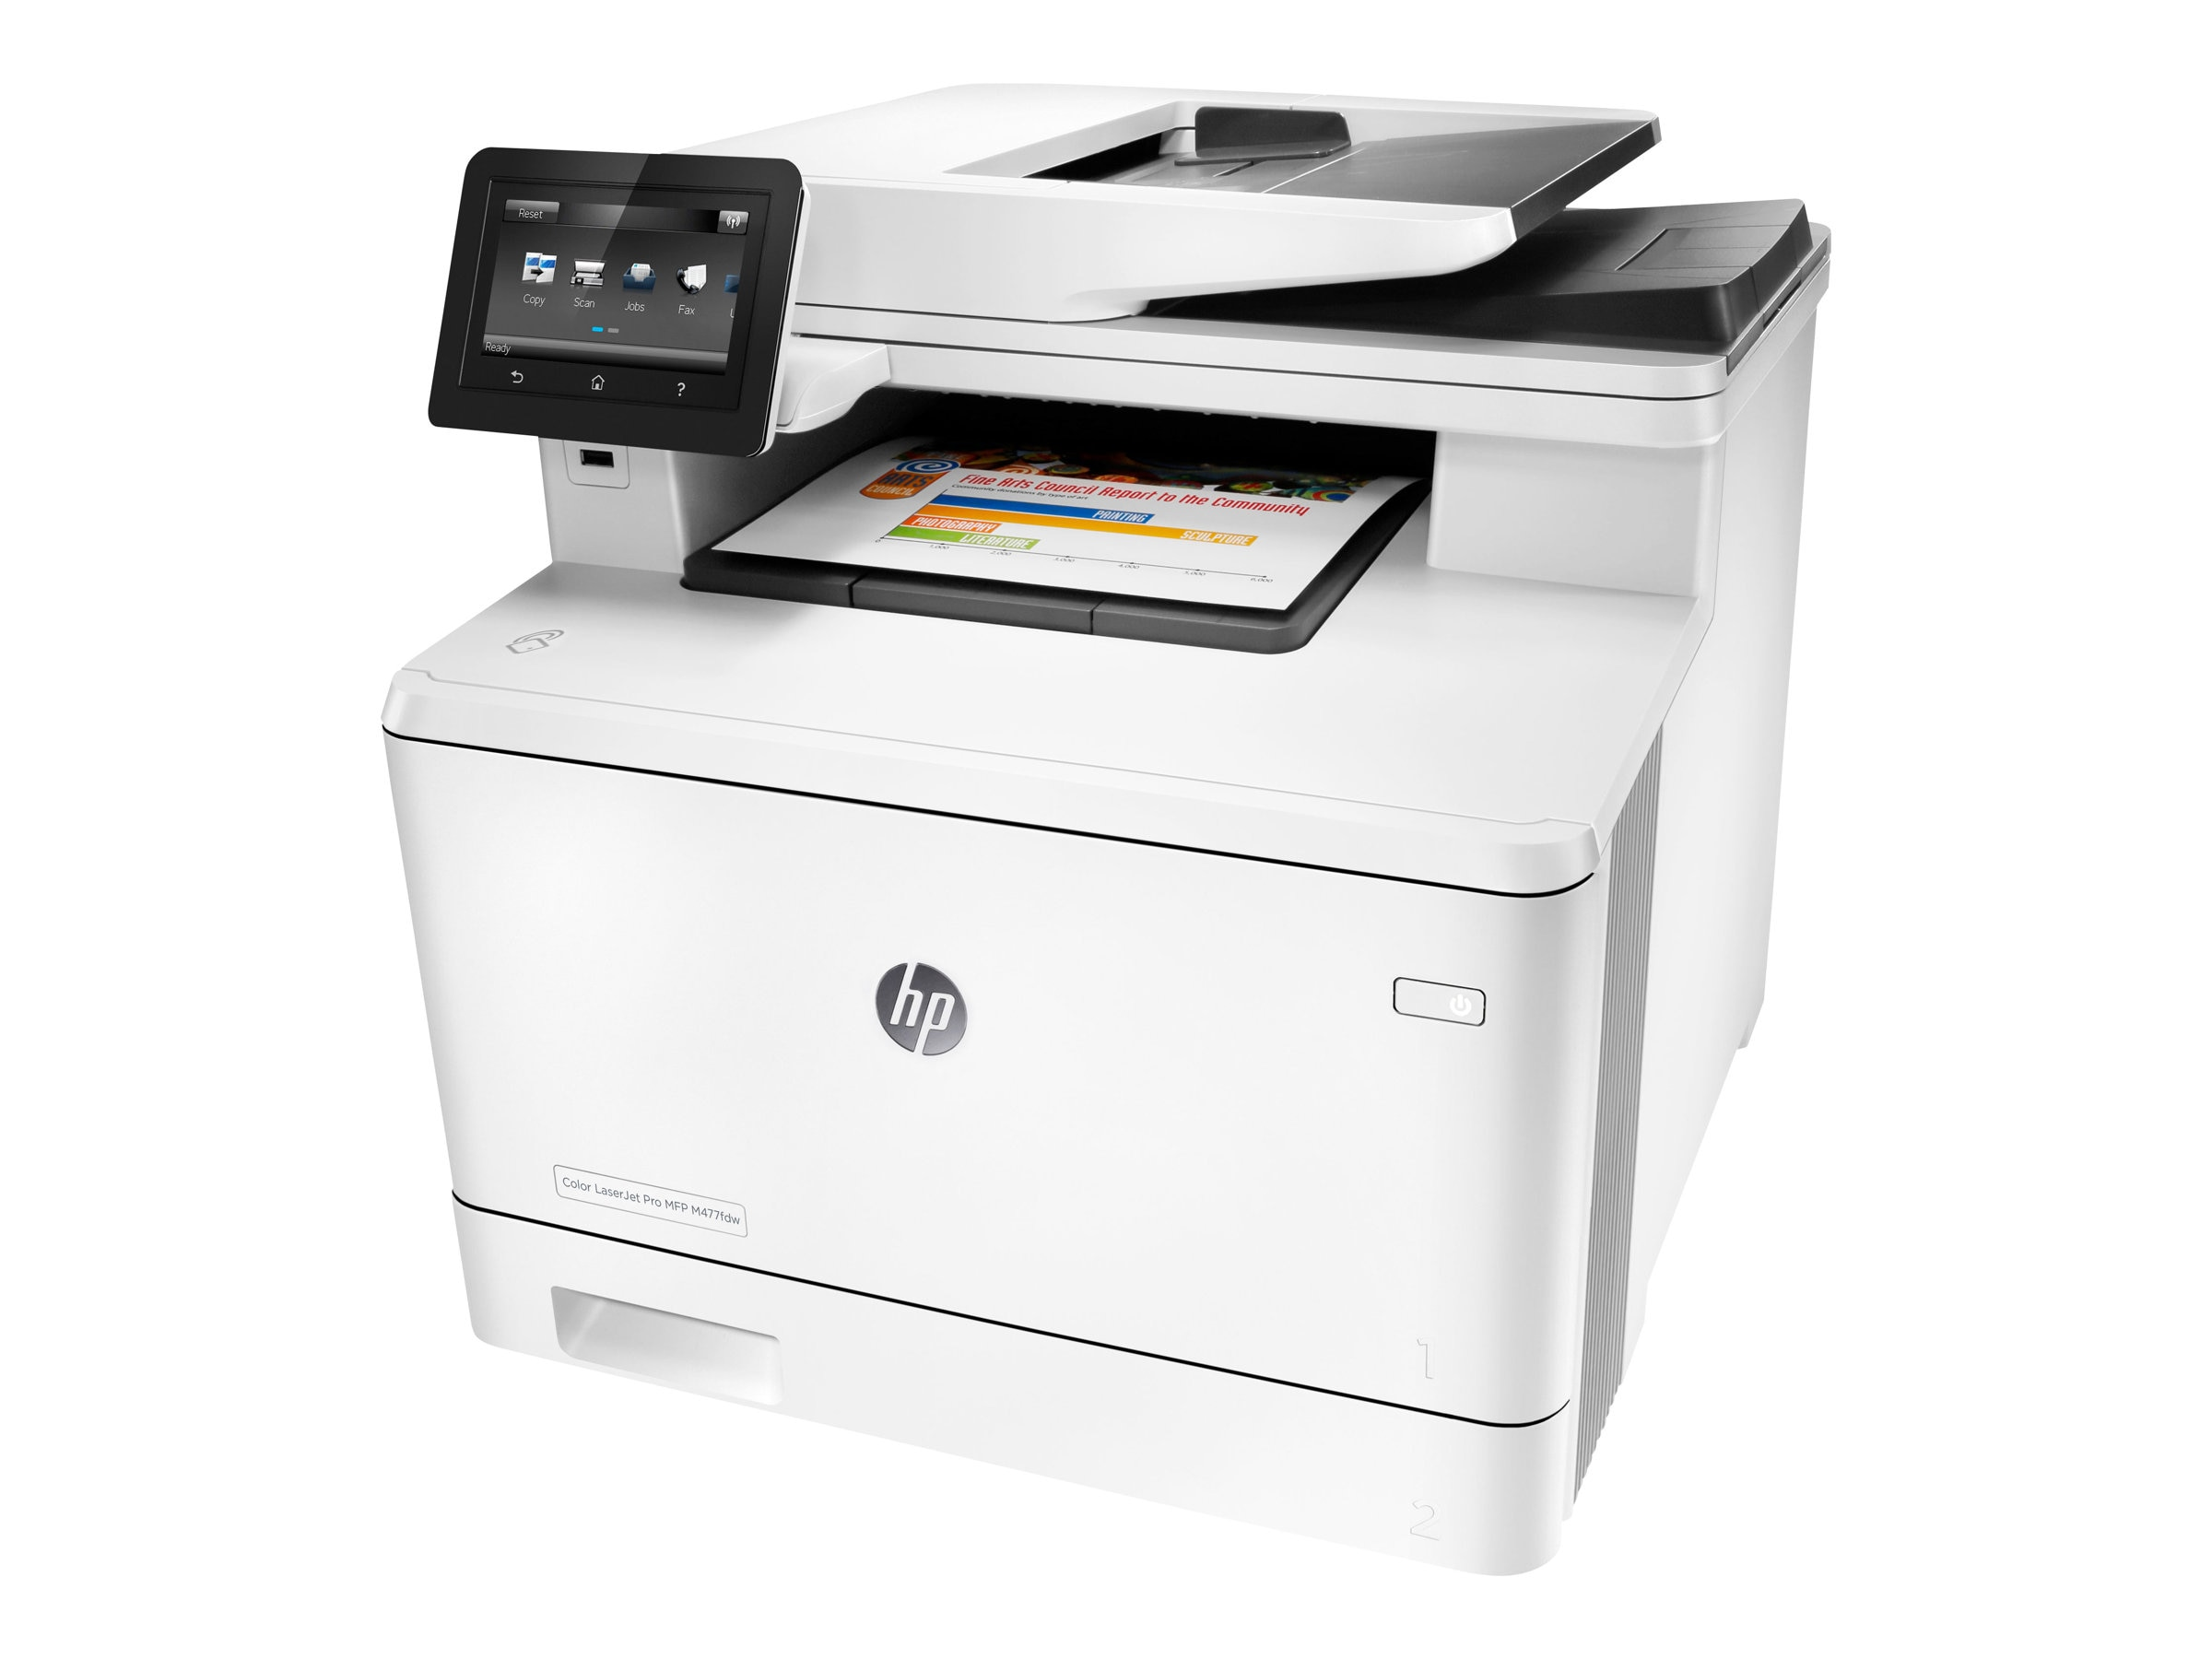 HP Color LaserJet Pro MFP M477fdw ($629 - $200 Instant Rebate = $429 Expires 4 30 2016), CF379A#BGJ, 30660405, MultiFunction - Laser (color)